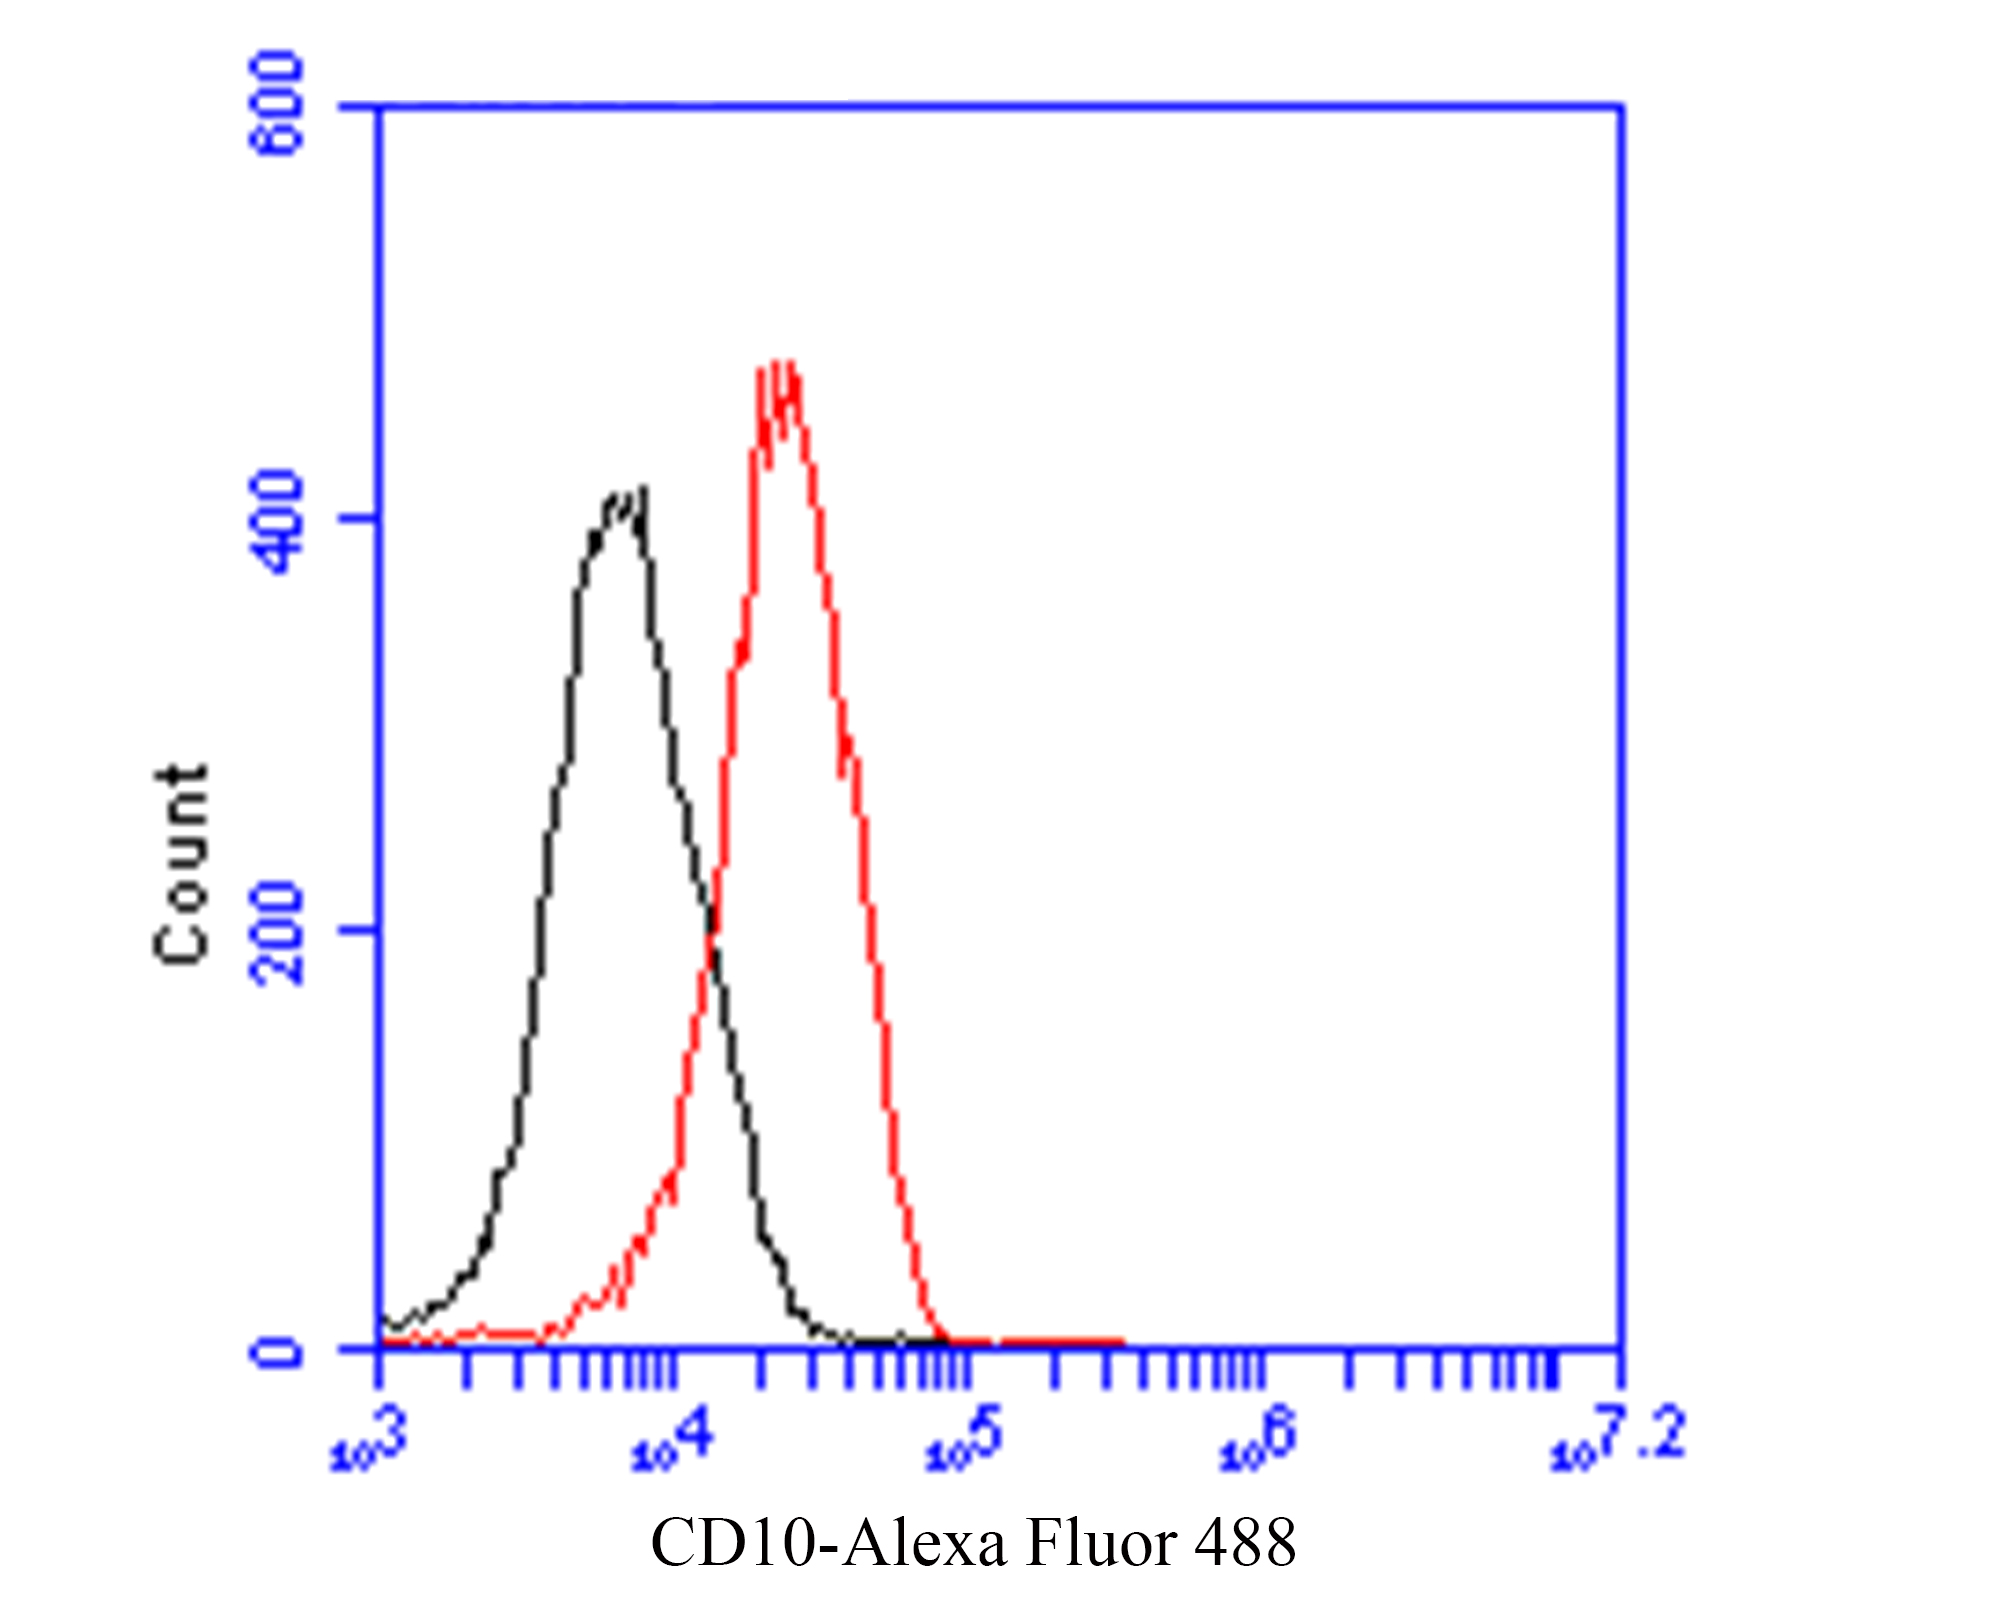 Flow cytometric analysis of CD10 was done on 293 cells. The cells were fixed, permeabilized and stained with the primary antibody (, 1/100) (red). After incubation of the primary antibody at room temperature for an hour, the cells were stained with a Alexa Fluor 488-conjugated goat anti-Mouse IgG Secondary antibody at 1/500 dilution for 30 minutes.Unlabelled sample was used as a control (cells without incubation with primary antibody; black).